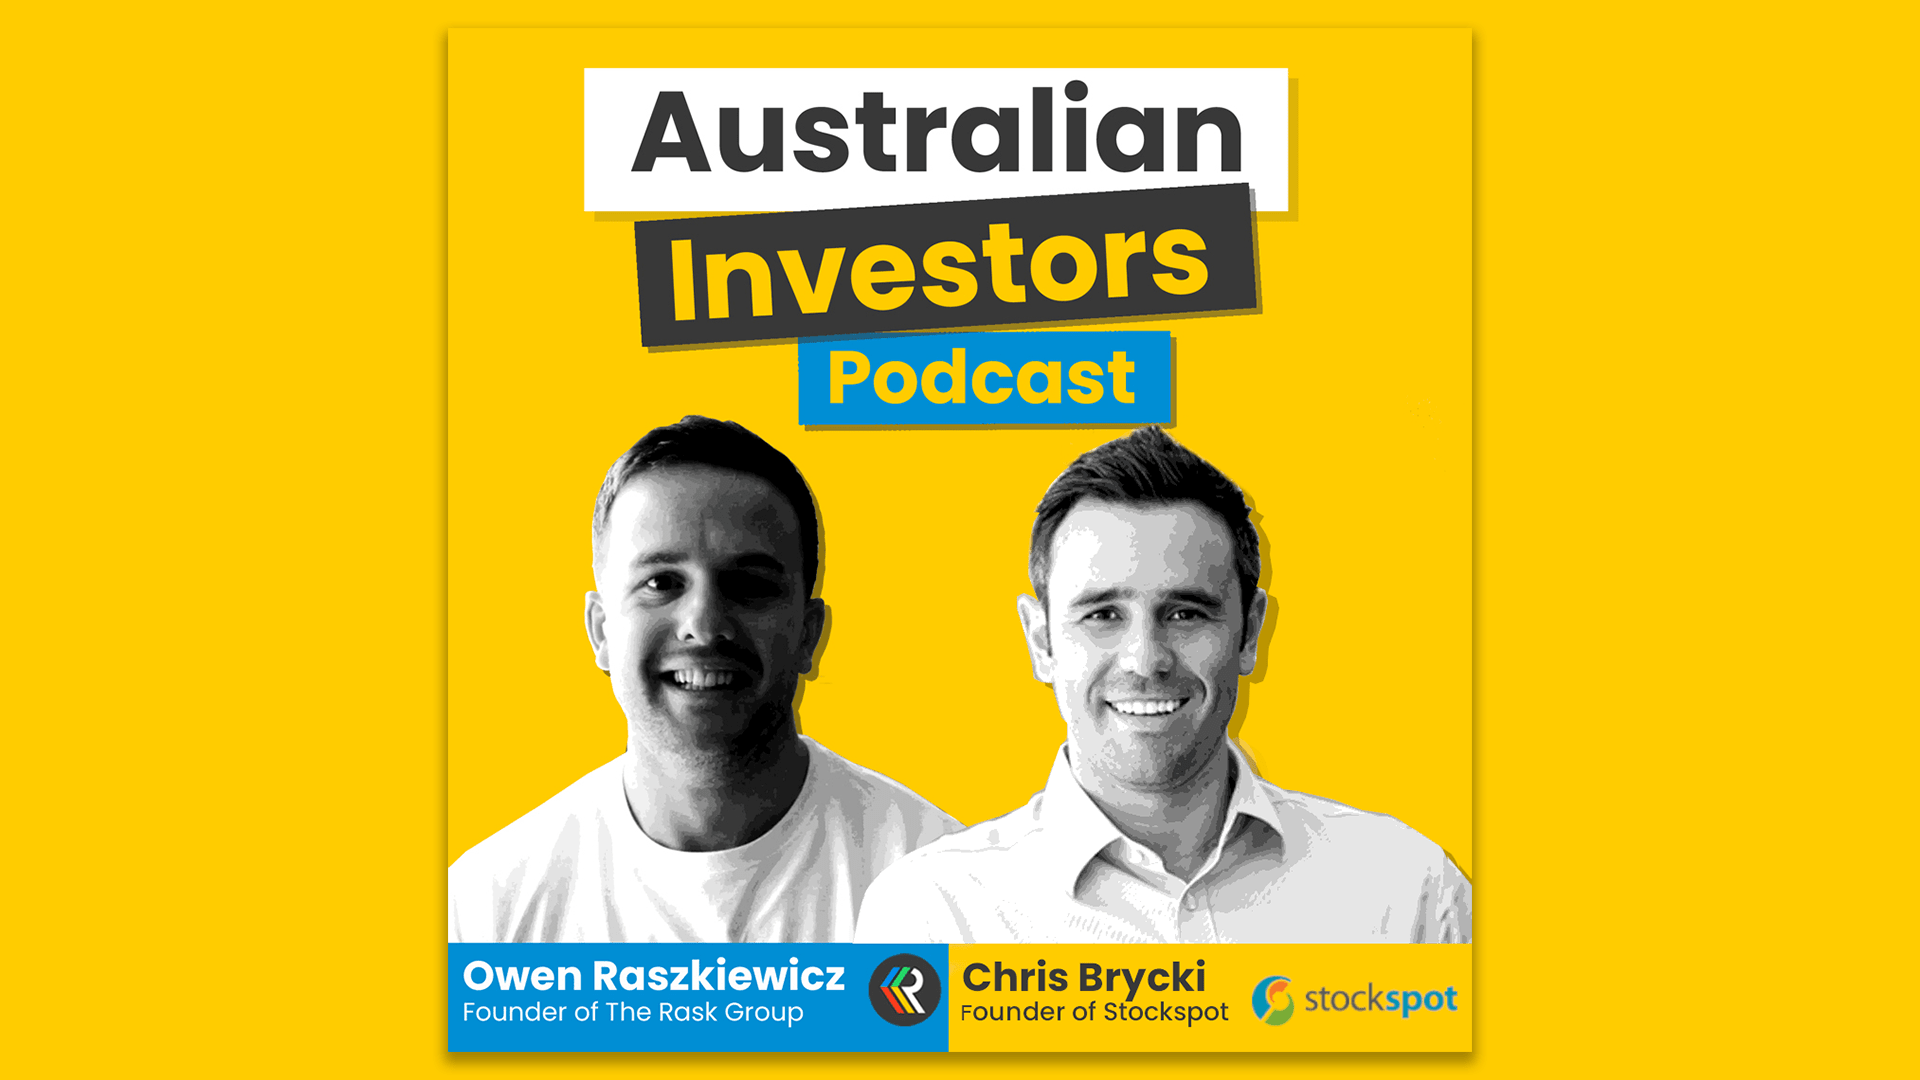 chris brycki Australian Investors Podcast